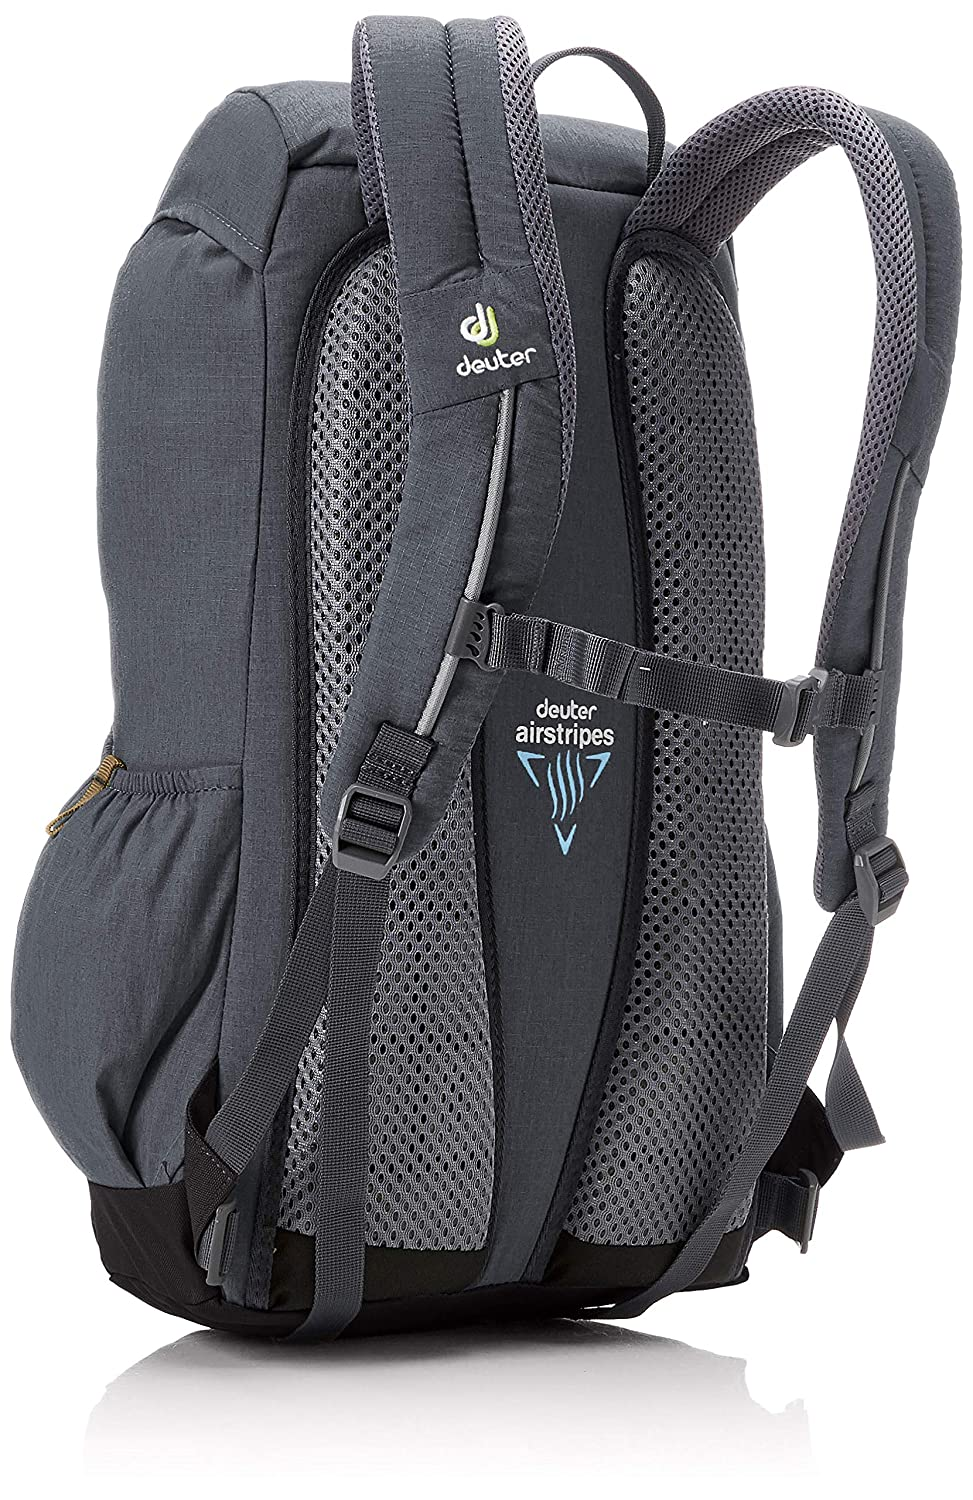 d90ab387d77 Amazon.com : Deuter Walker 24 Backpack, Anthracite/Black, 24-Liter : Sports  & Outdoors